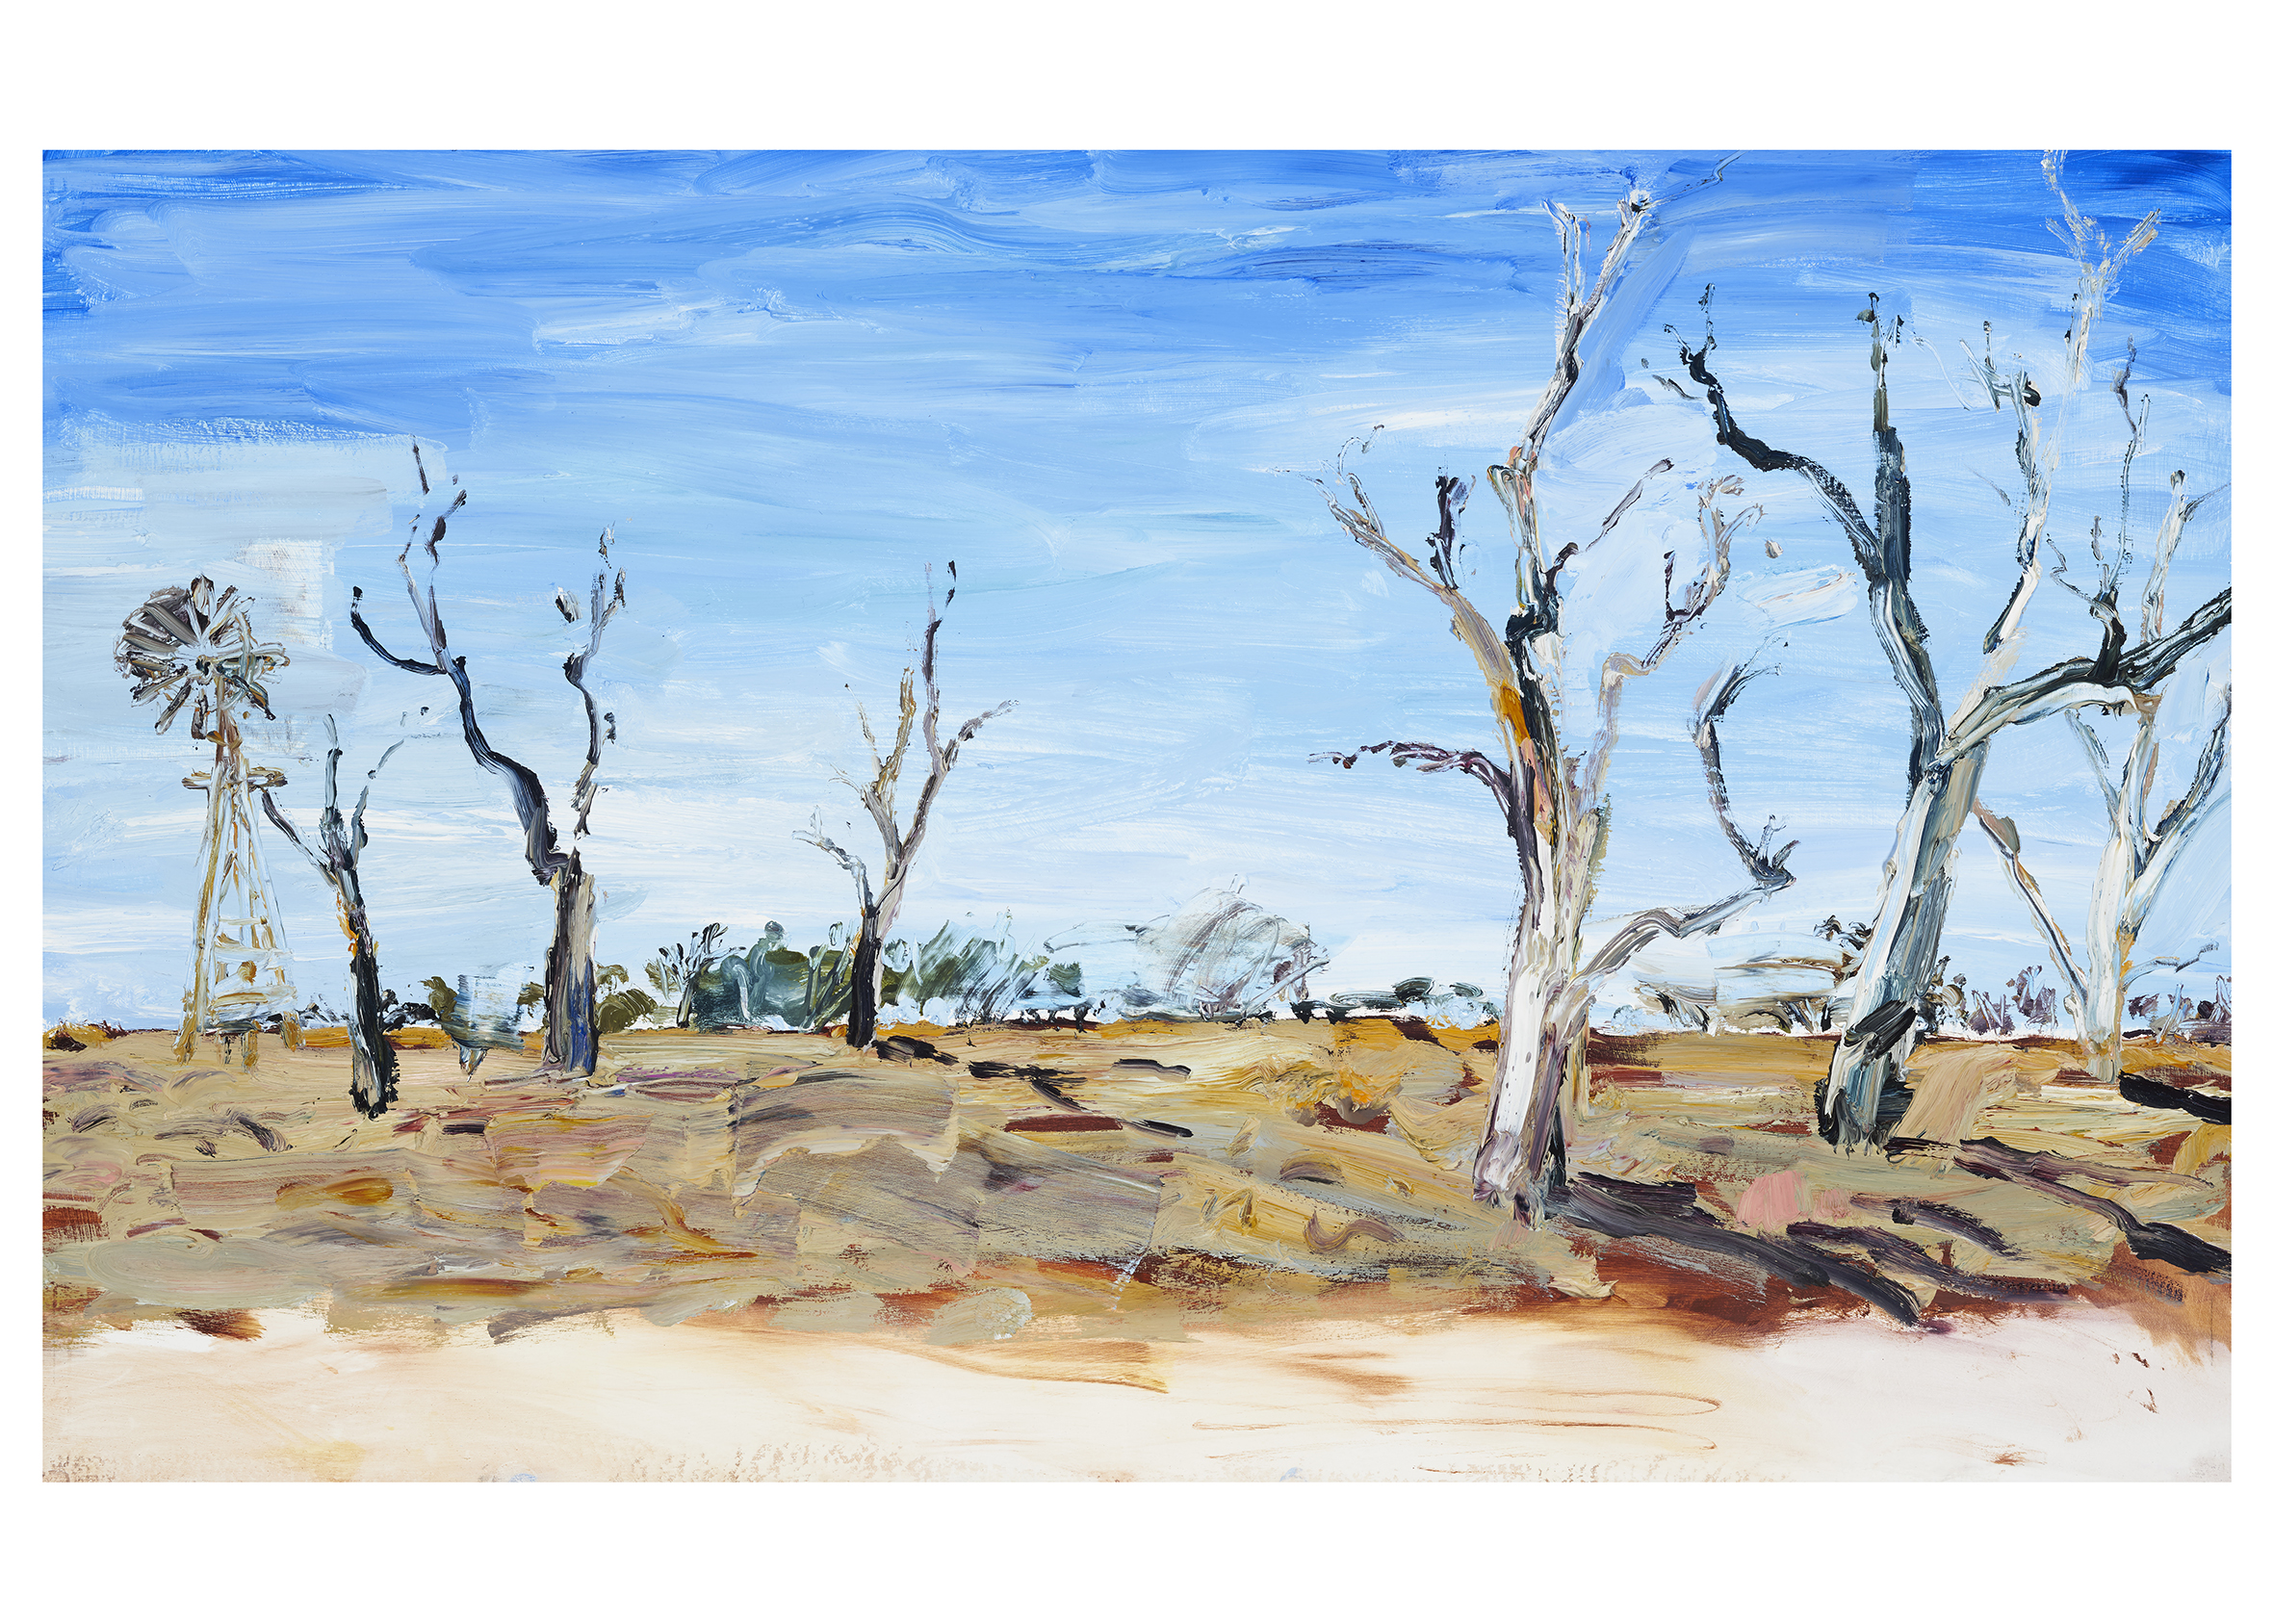 IIllustration from Mallee Sky picture book by Jodi Toering/Tannya Harricks. Published by Walker Books/Black Dog books.    Fine art print #2 Landscape 40 x 56 cm   Limited edition of 49/50 available  AU $290 plus postage   to order please email me at harricks@iinet.net.au